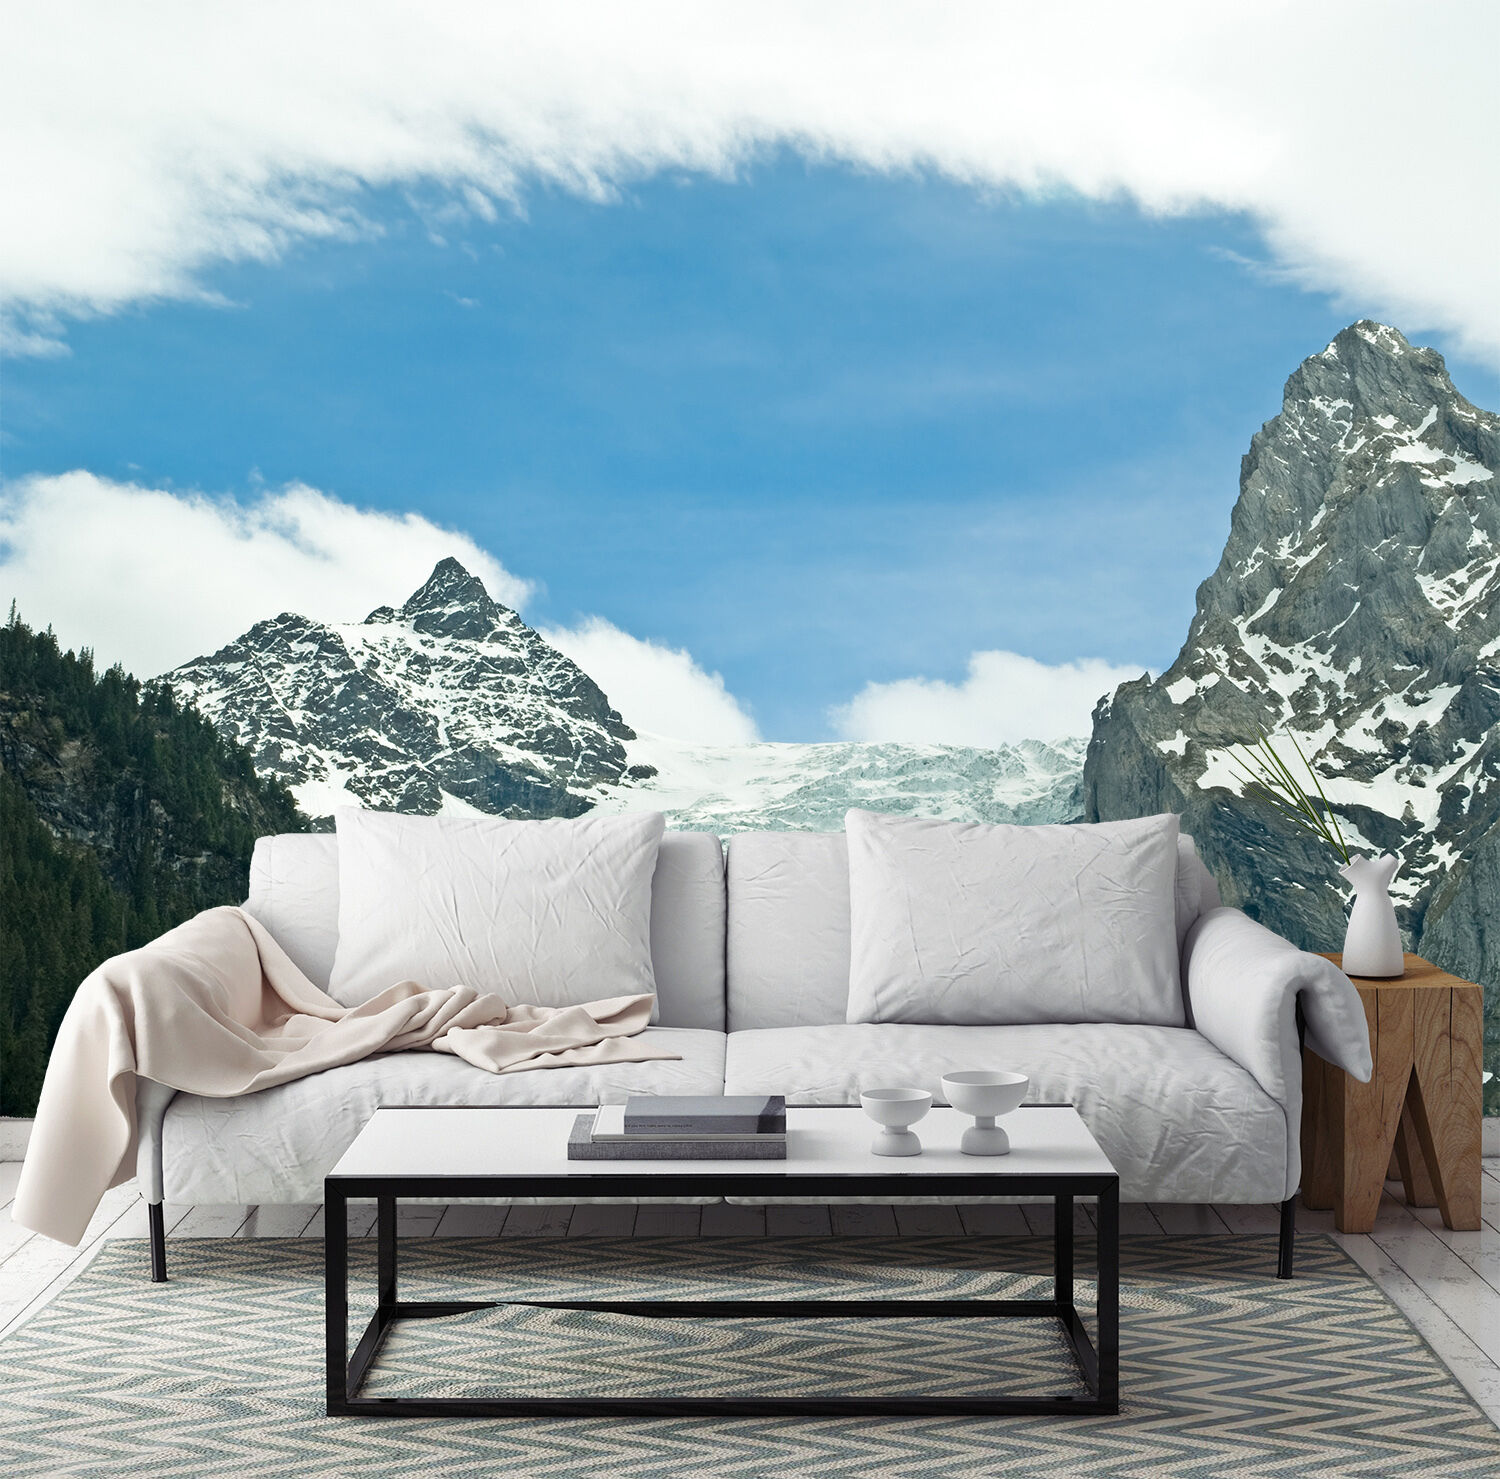 3D Snow Mountain Weiß Wall Paper Print Decal Wall Deco Indoor wall Mural